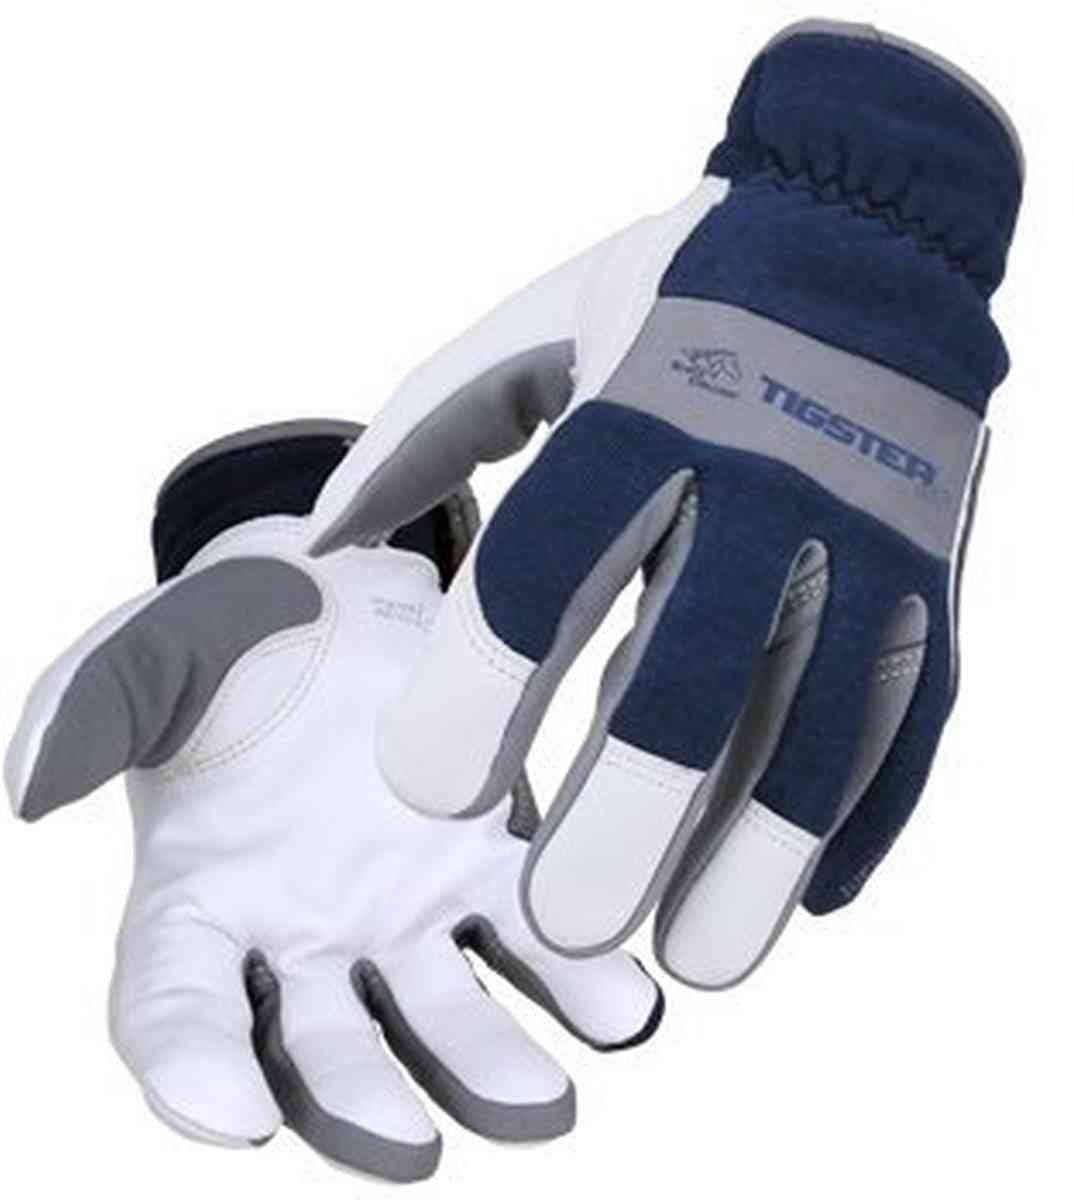 Revco Industries T50 M Tigster Tig Welding Glove, White, Medium (Pack of 12)